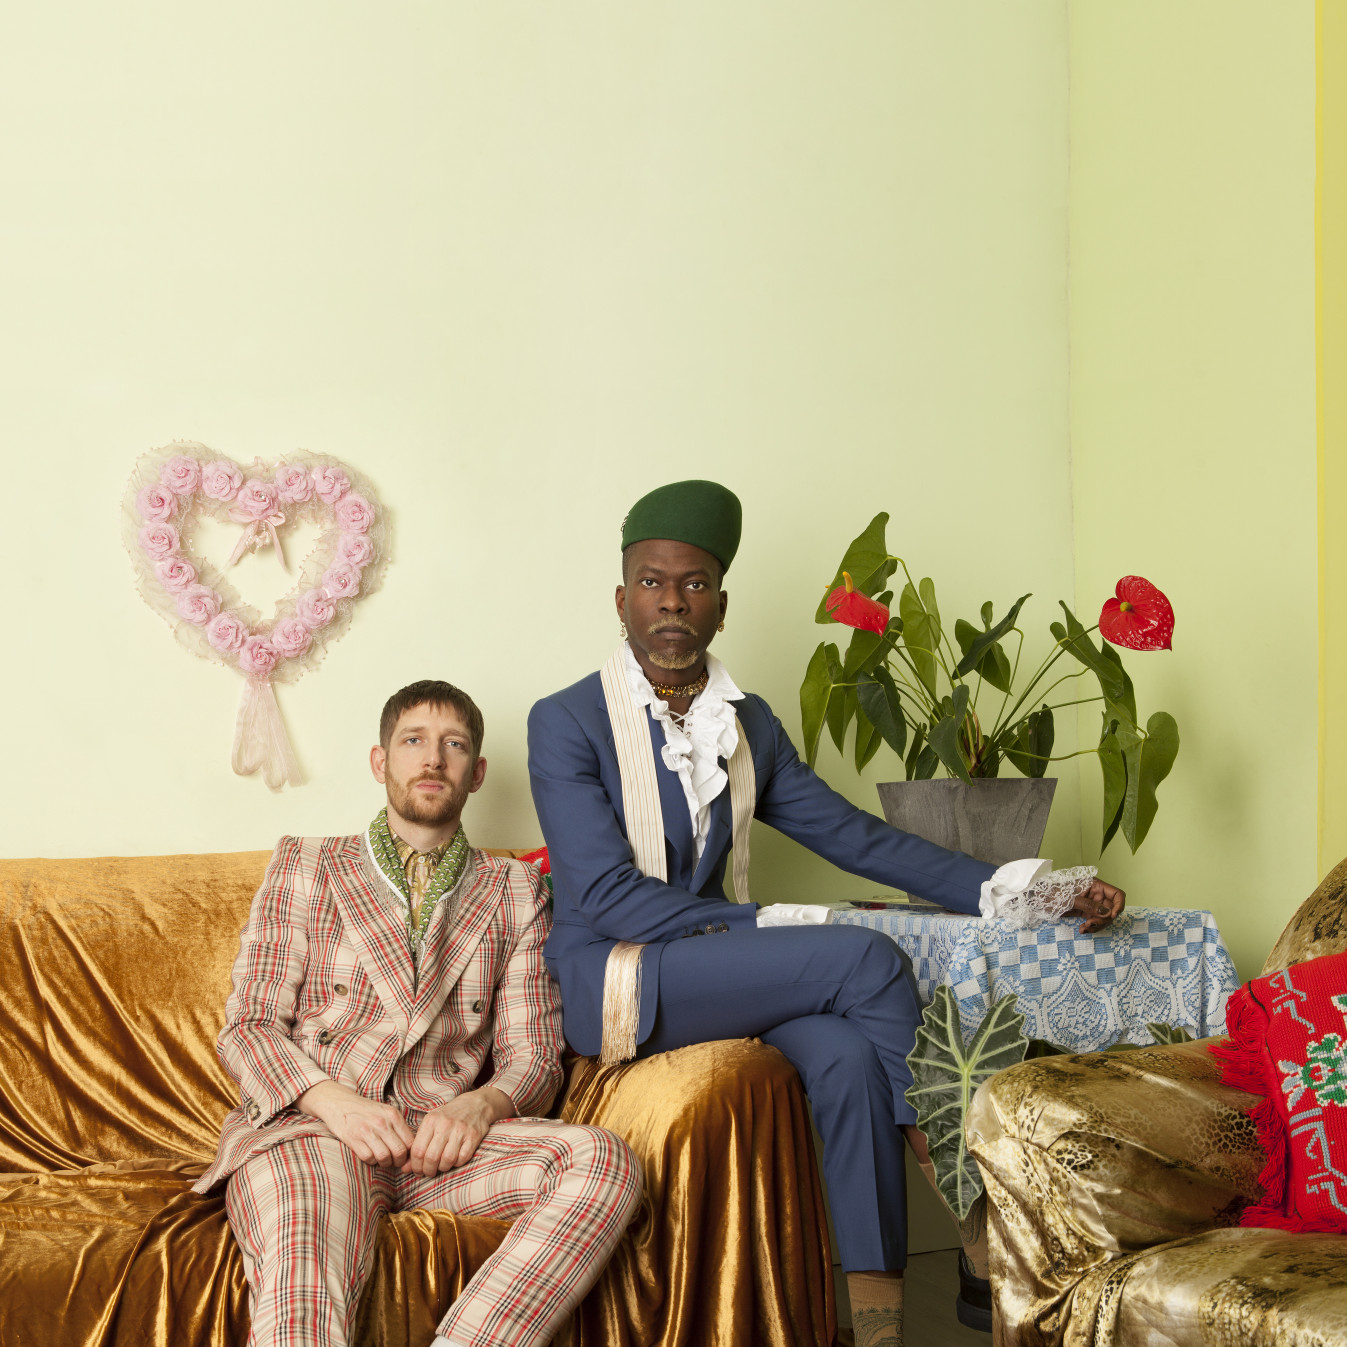 Pierre Kwenders and Clément Bazin unveil Classe Tendresse